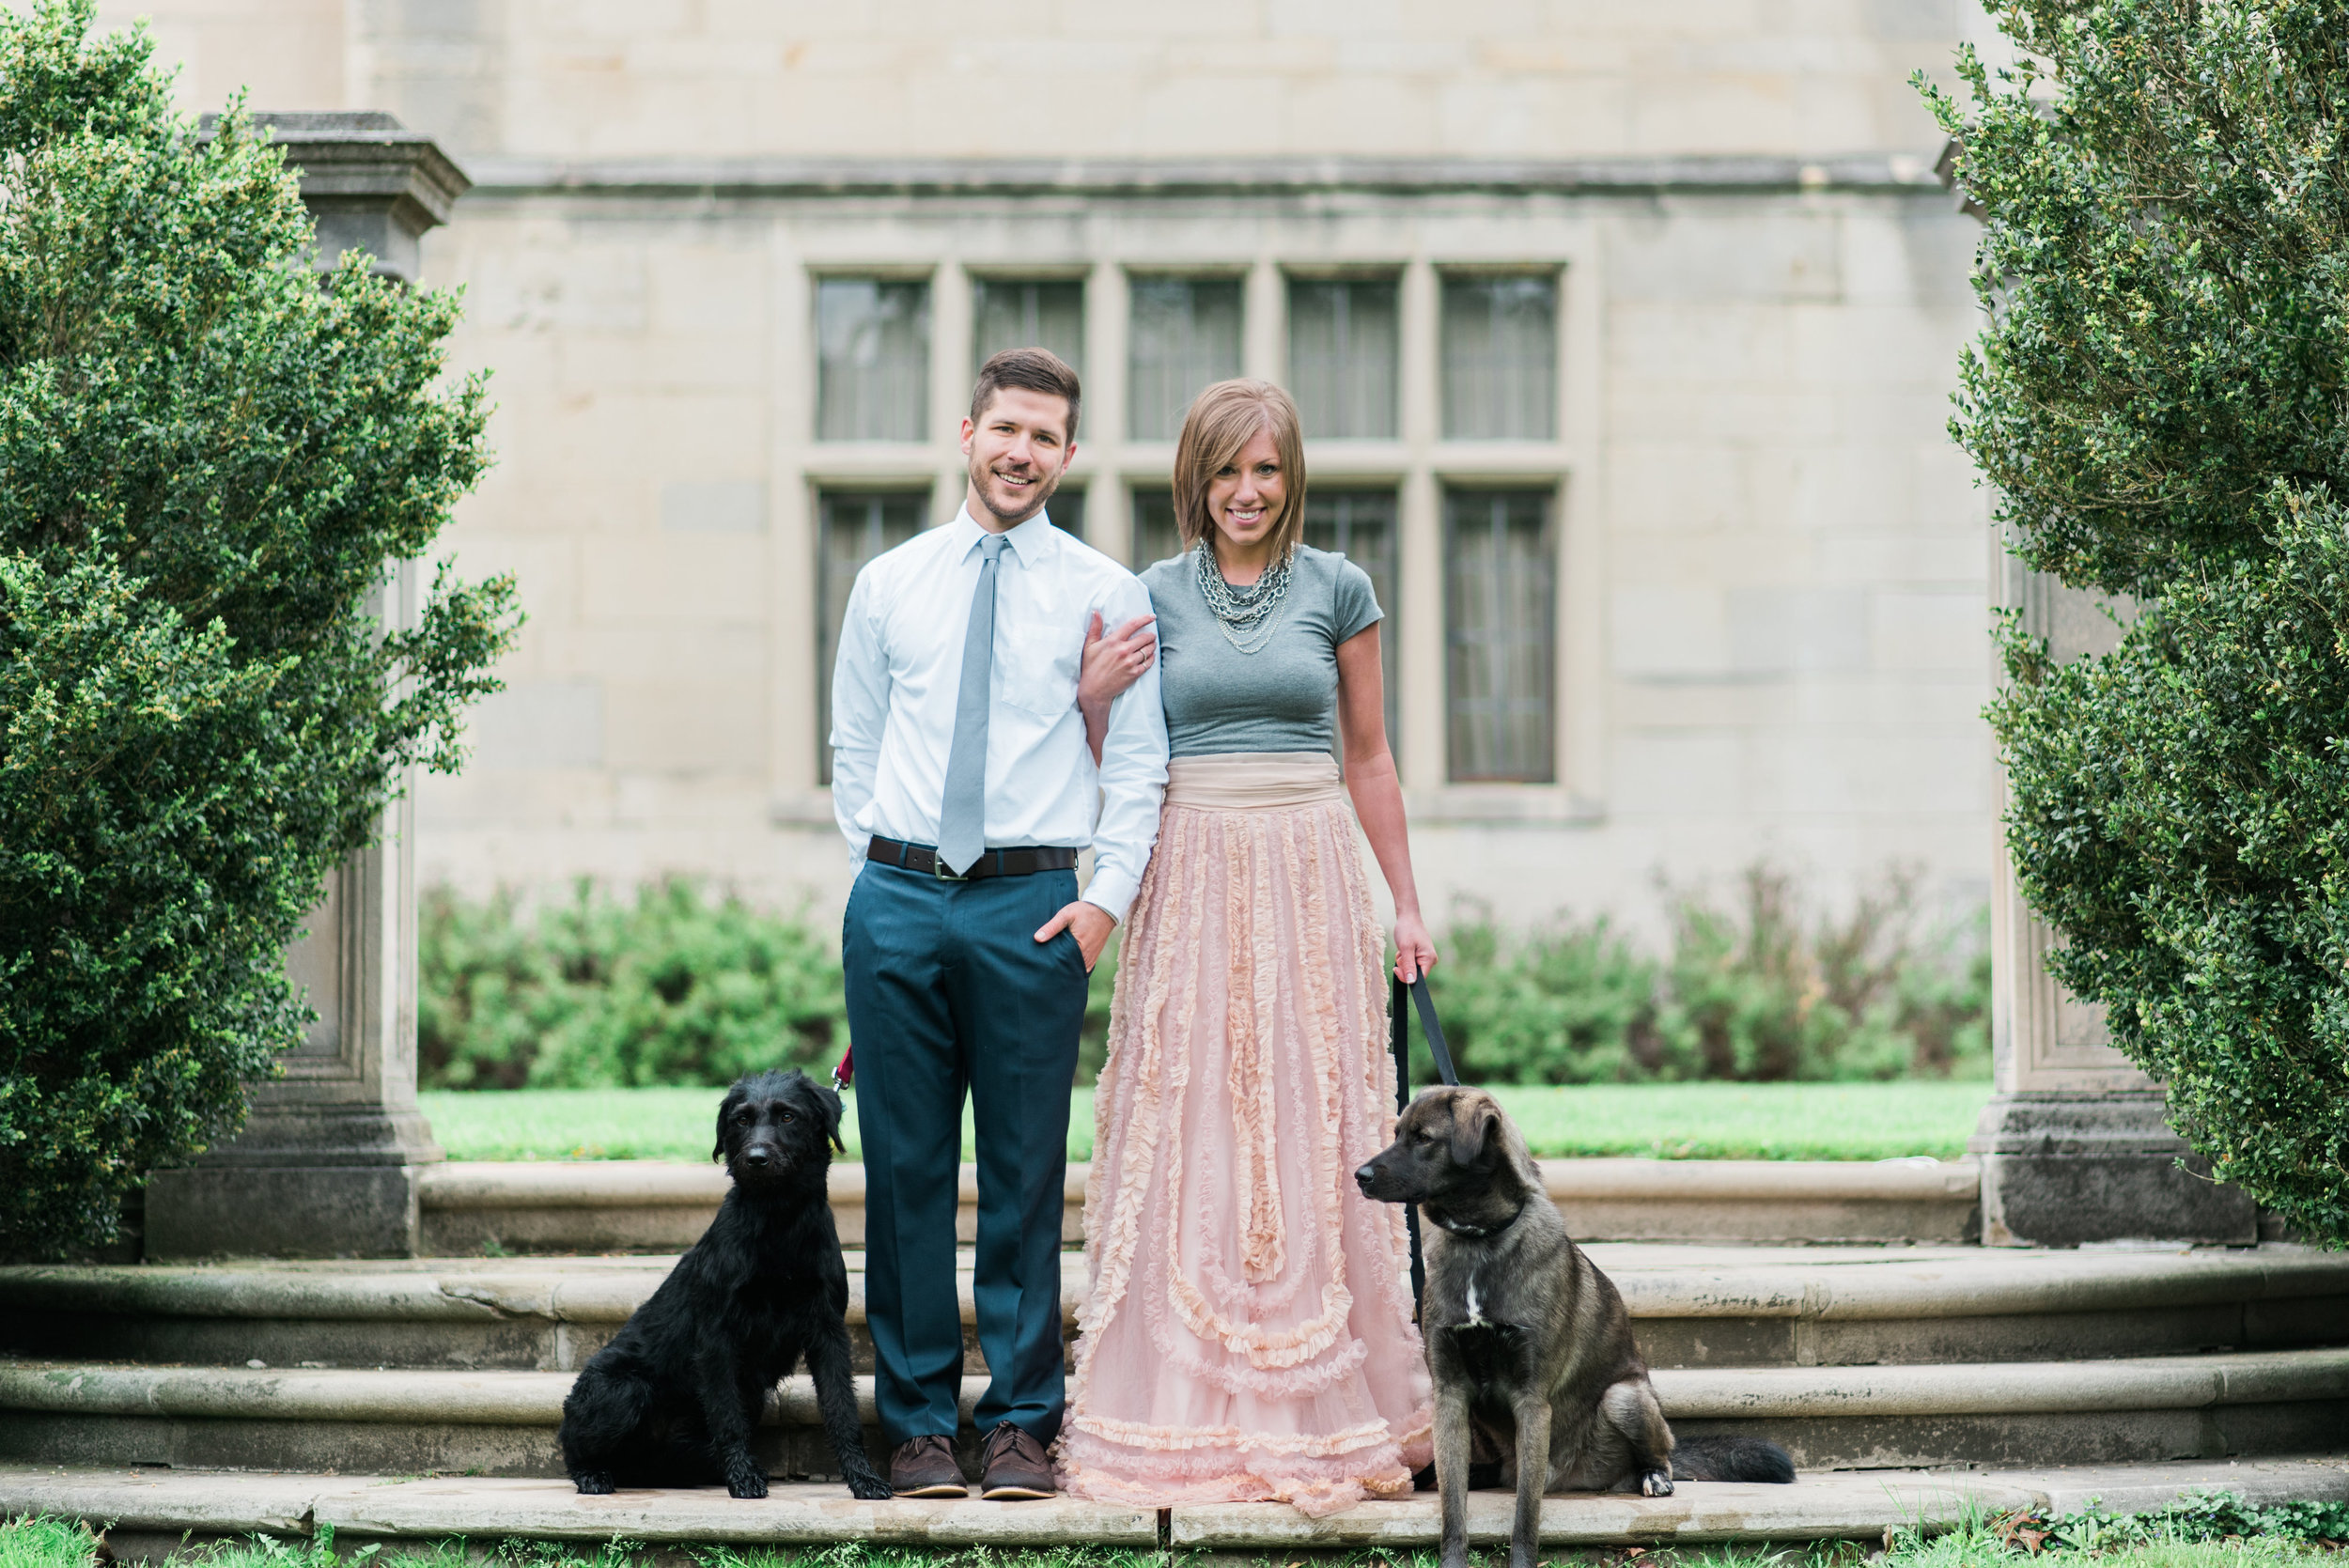 Pittsburgh Wedding Photography | Deena & Adam Engagement Session 19